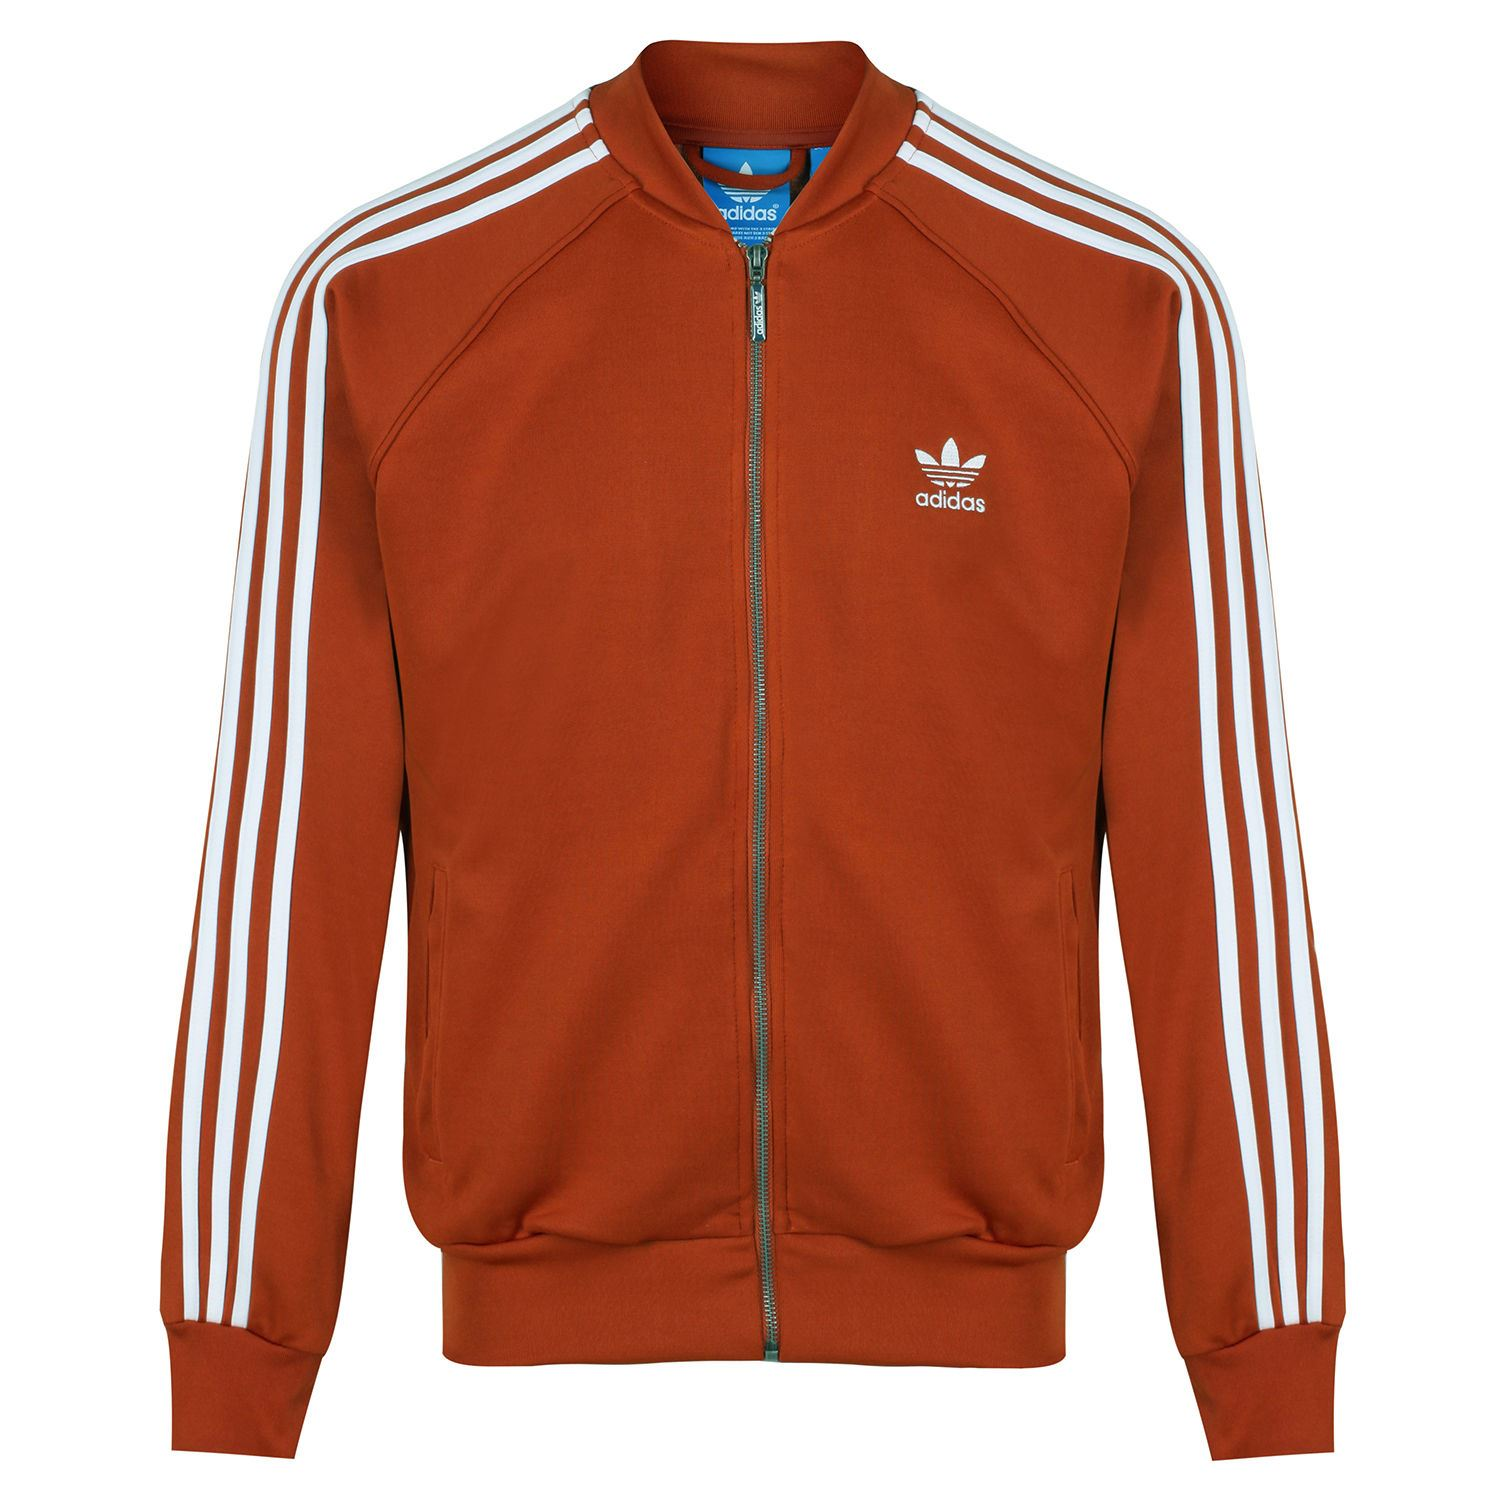 official photos 8a442 4a74b adidas ORIGINALS SUPERSTAR TRACK TOP GREEN RED NAVY RETRO RUN DMC CASUALS  MEN S